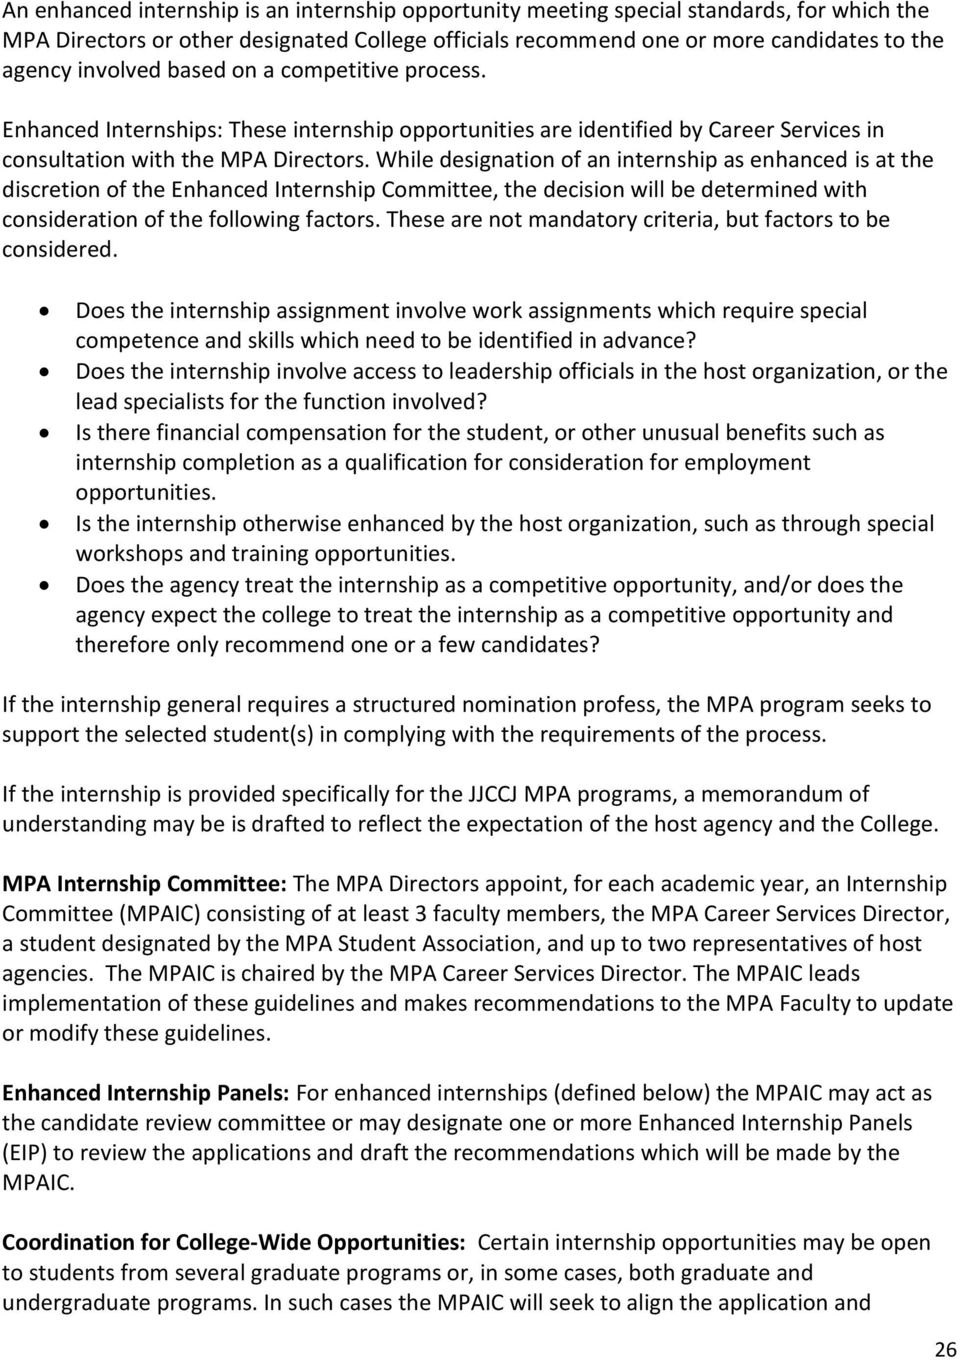 While designation of an internship as enhanced is at the discretion of the Enhanced Internship Committee, the decision will be determined with consideration of the following factors.